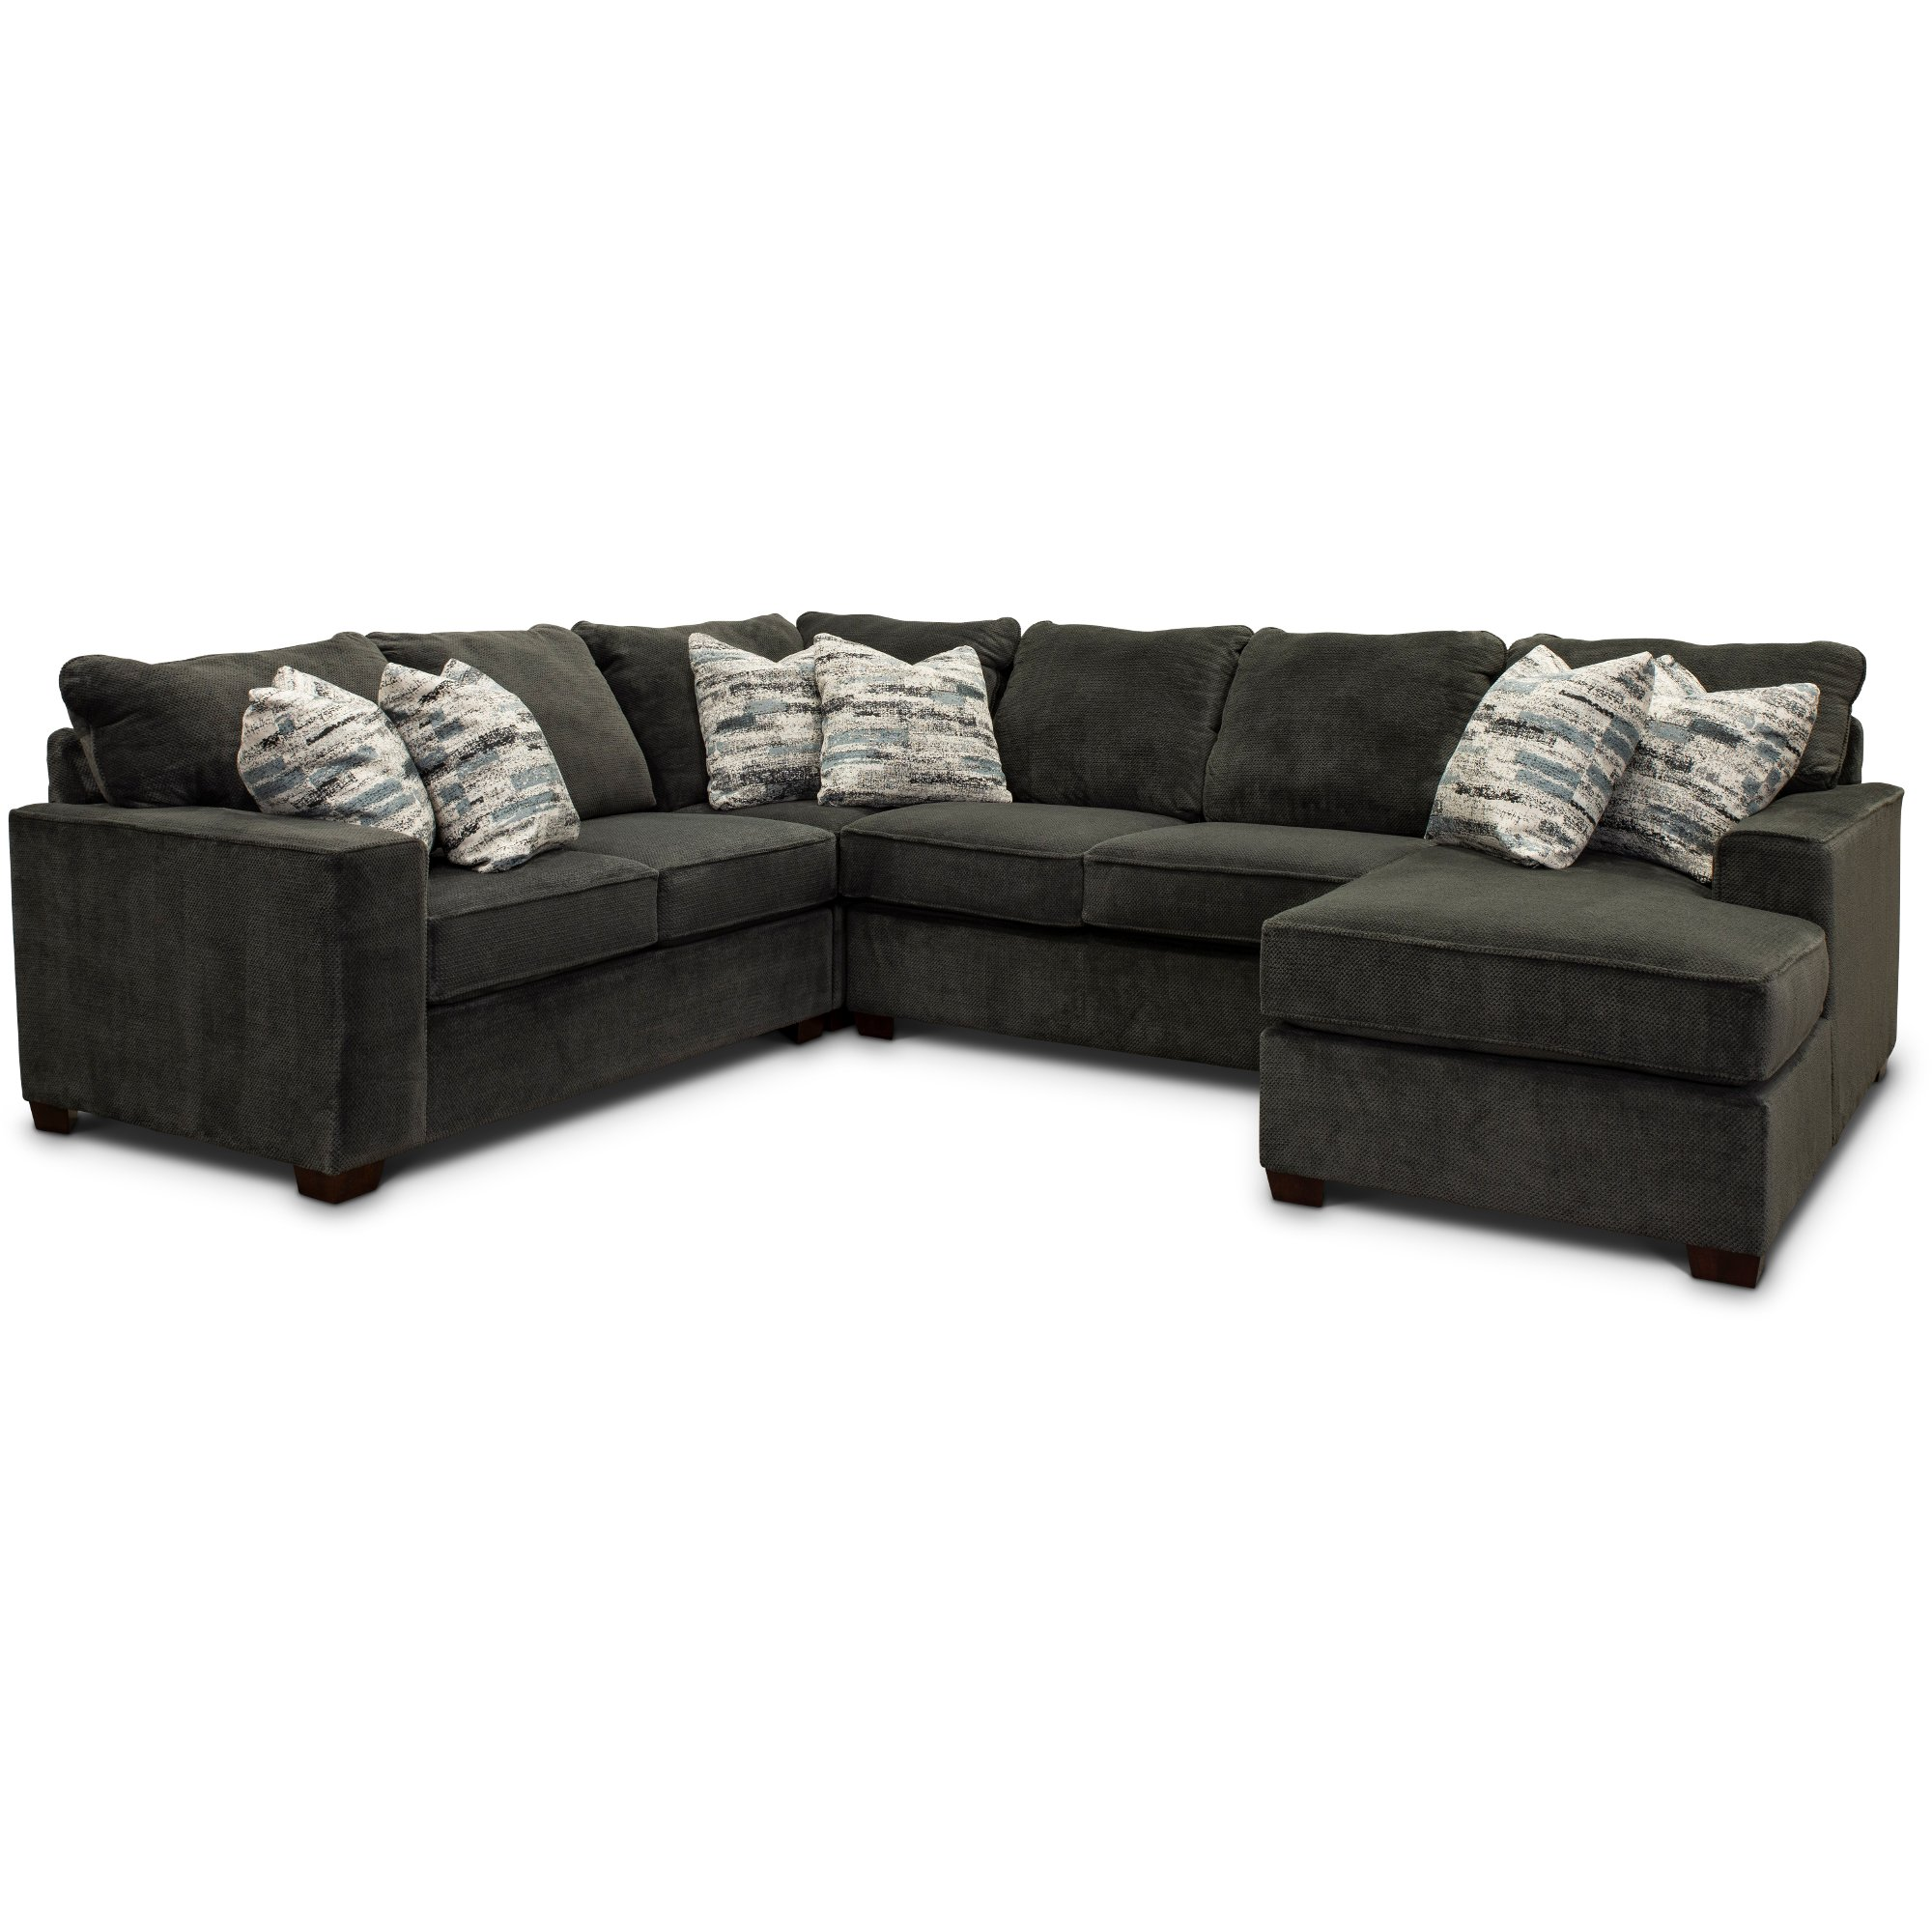 Dark Gray 4 Piece Sectional Sofa With